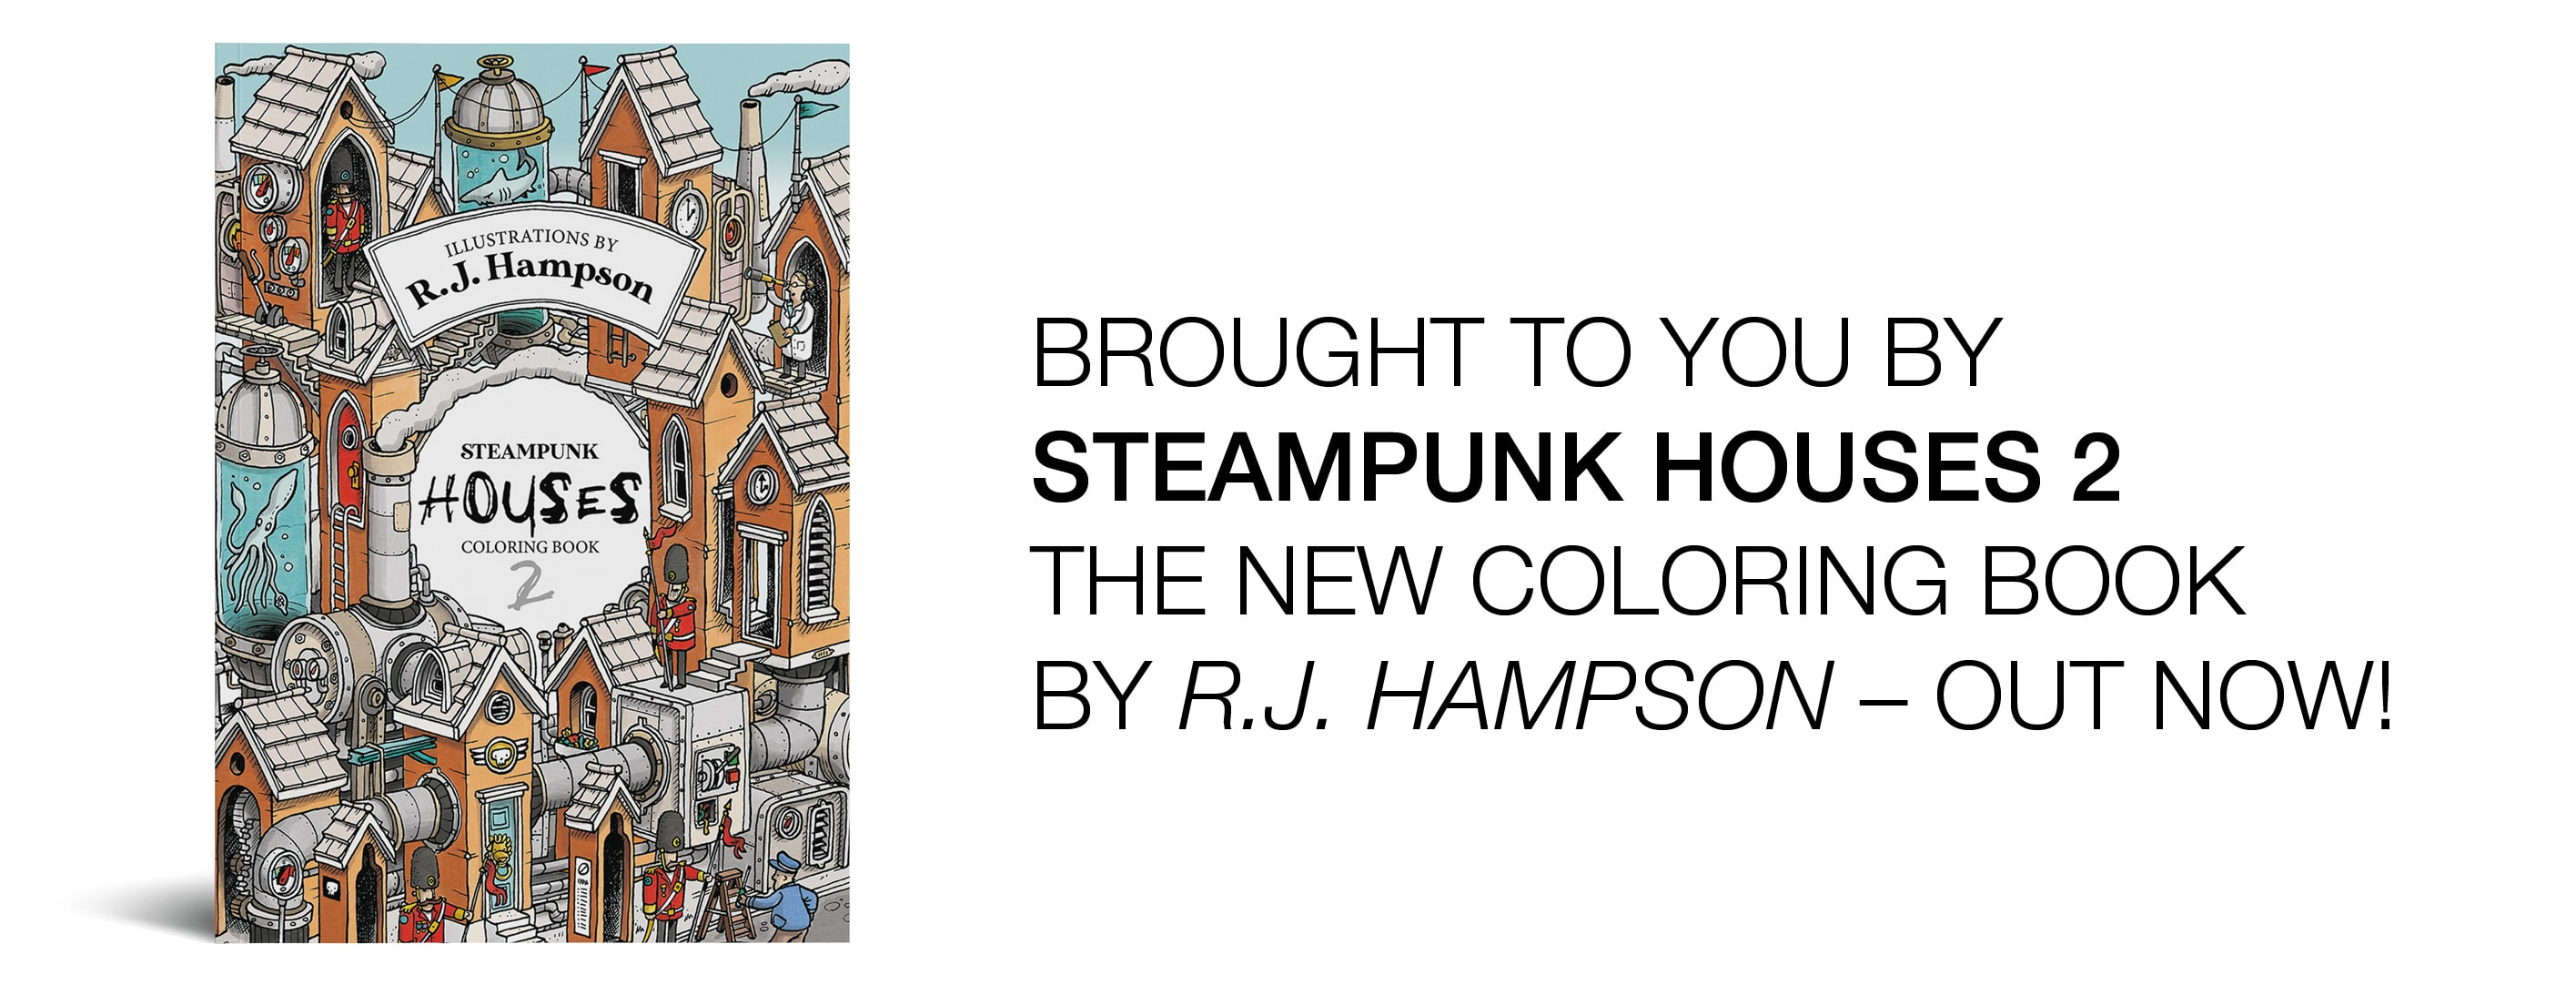 Steampunk Houses 2